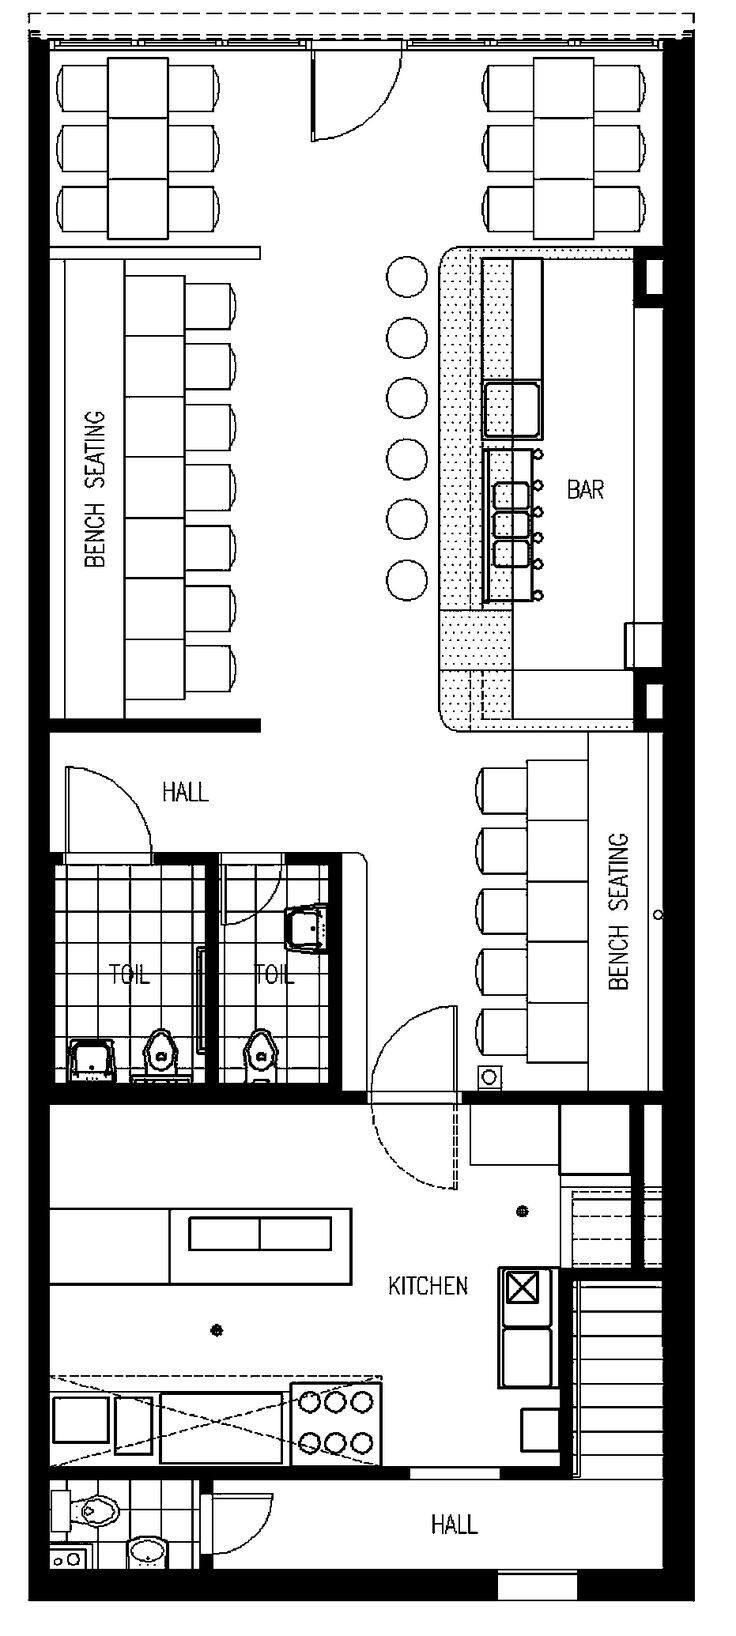 Marvelous 2 Storey Apartment Floor Plans Philippines Best 25 Two House Ideas On Pinterest together with Thai House Plans besides Cafe Floor Plan additionally Cheap To Build House Plans further Charming Design For Your Home With Entrance Lobby And Spacious Living Room And Balcony Beside Dining Room In Home Designs Plans. on thai architects house plans